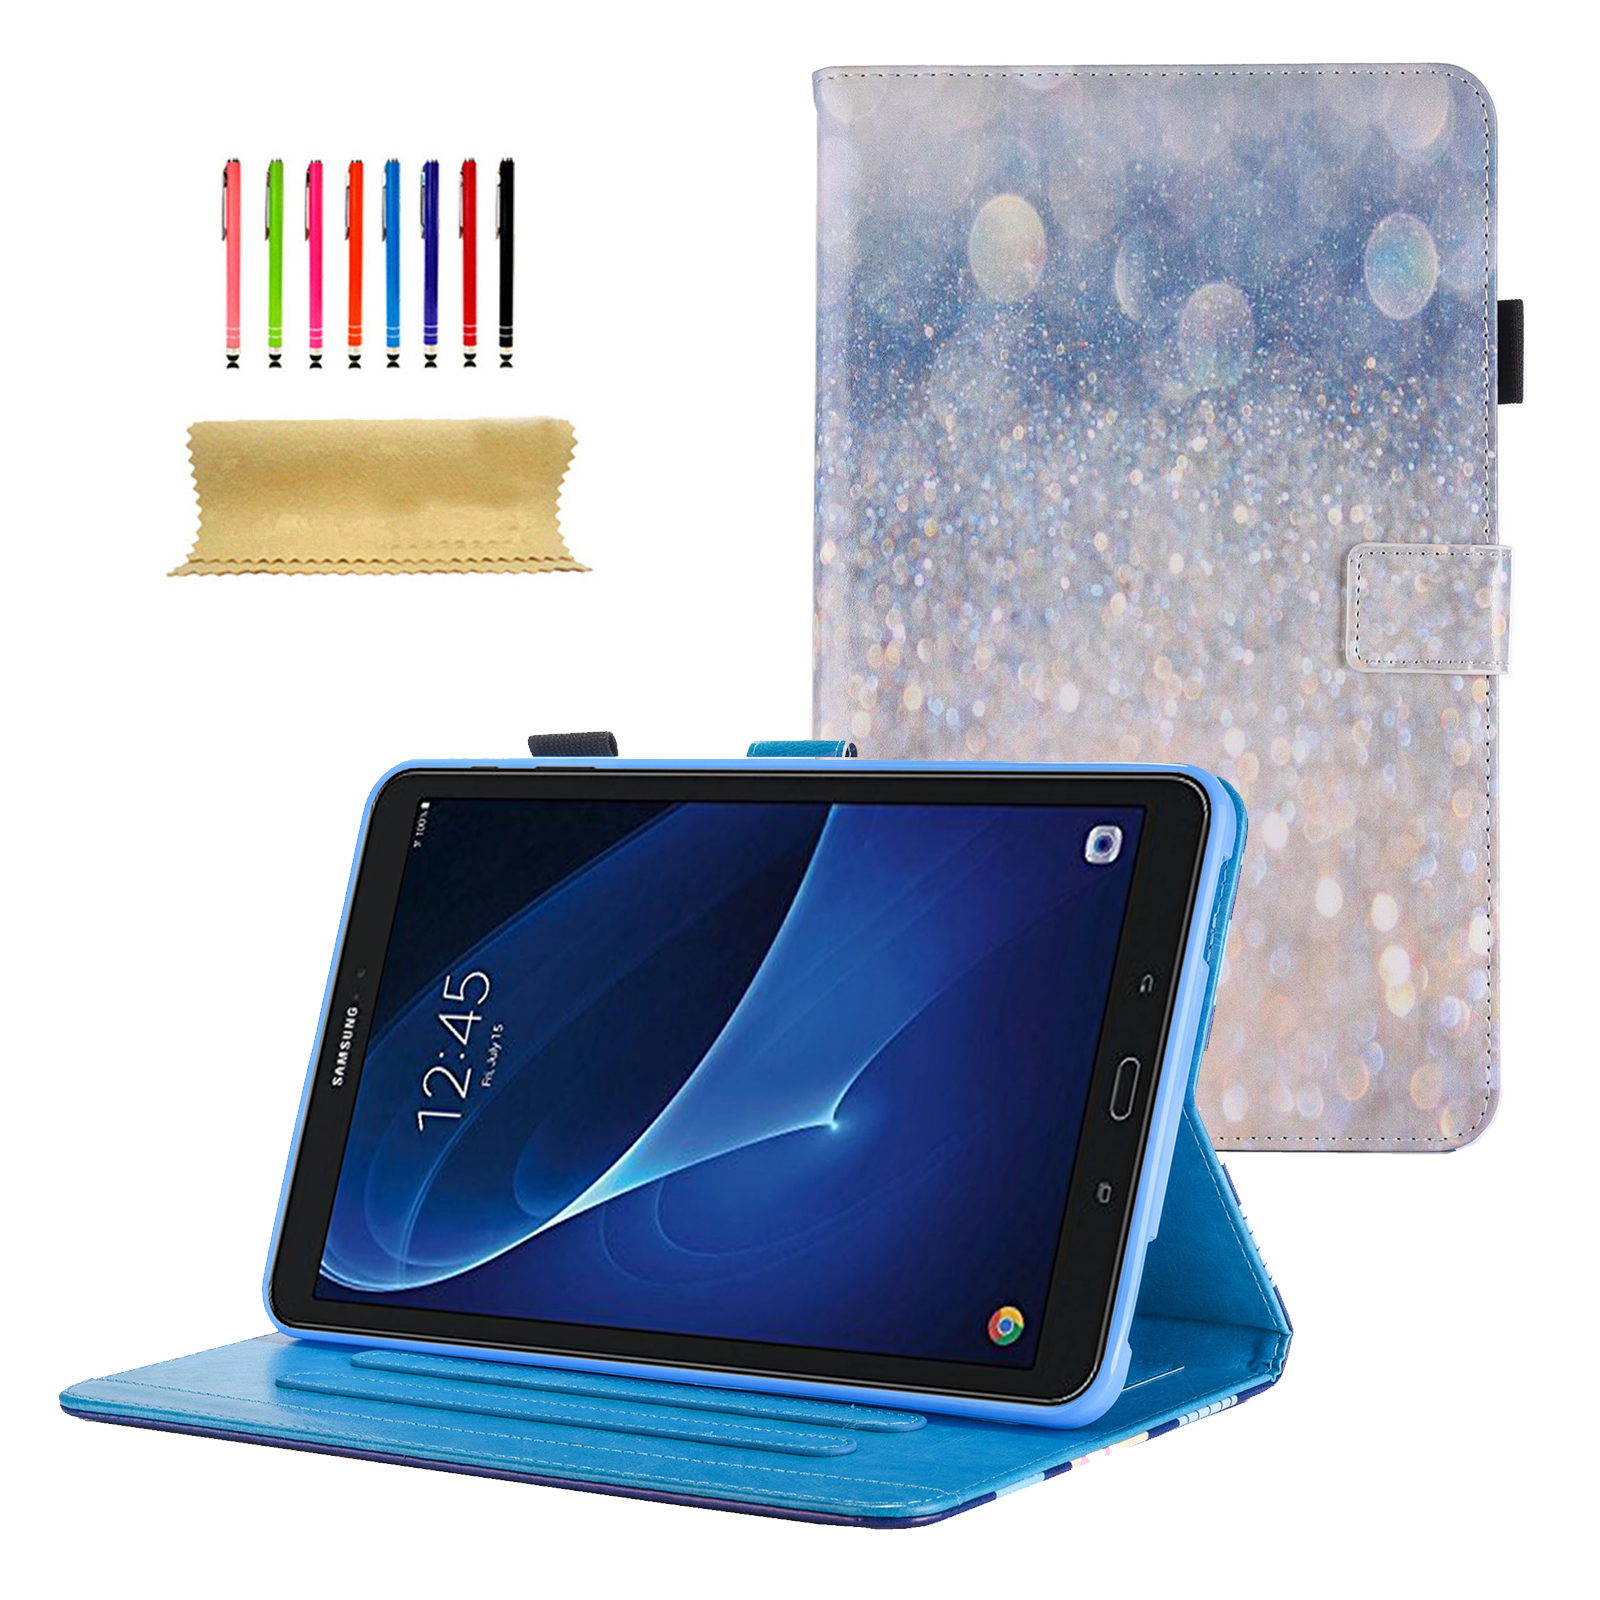 Galaxy Tab A 10.1 Case, Goodest PU Leather Folio Case Cover for Samsung 10.1 Inch Tablet SM-T580 T585 (NO S Pen Version) with Auto Wake/Sleep & Card Slots, Multiple Viewing Angles,Sparkling Sand